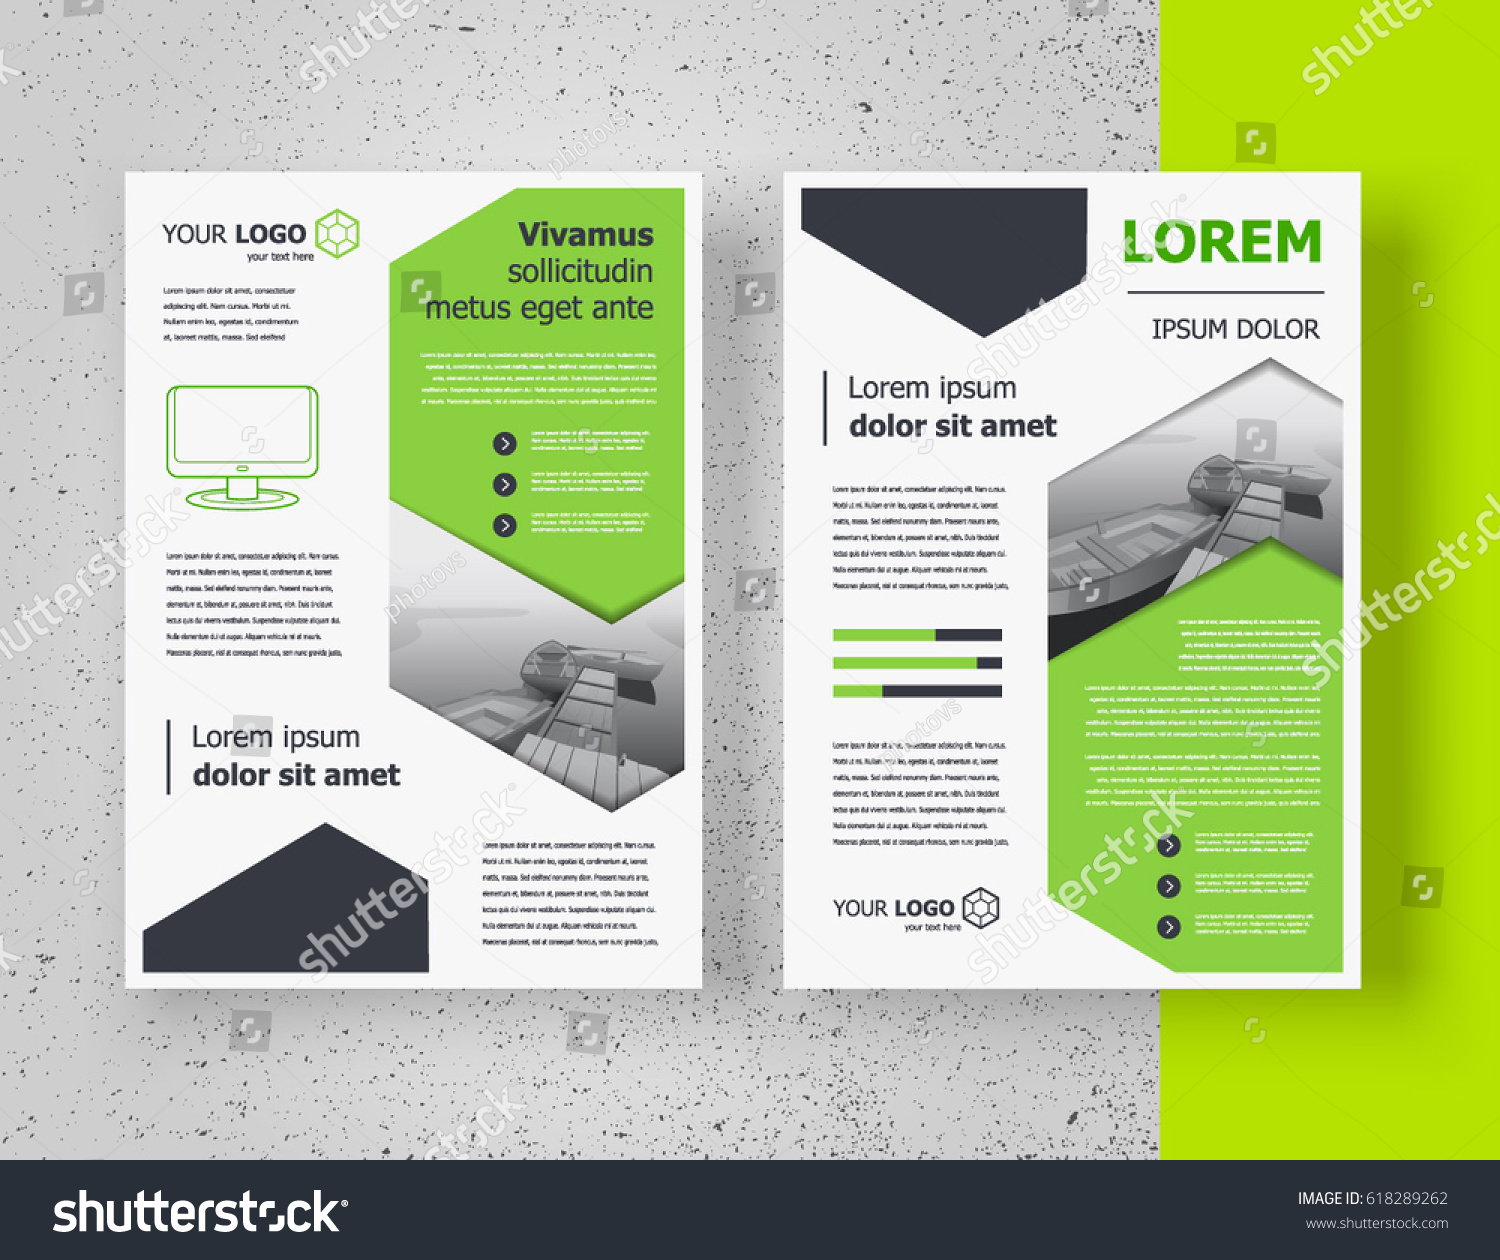 Blank campaign poster template